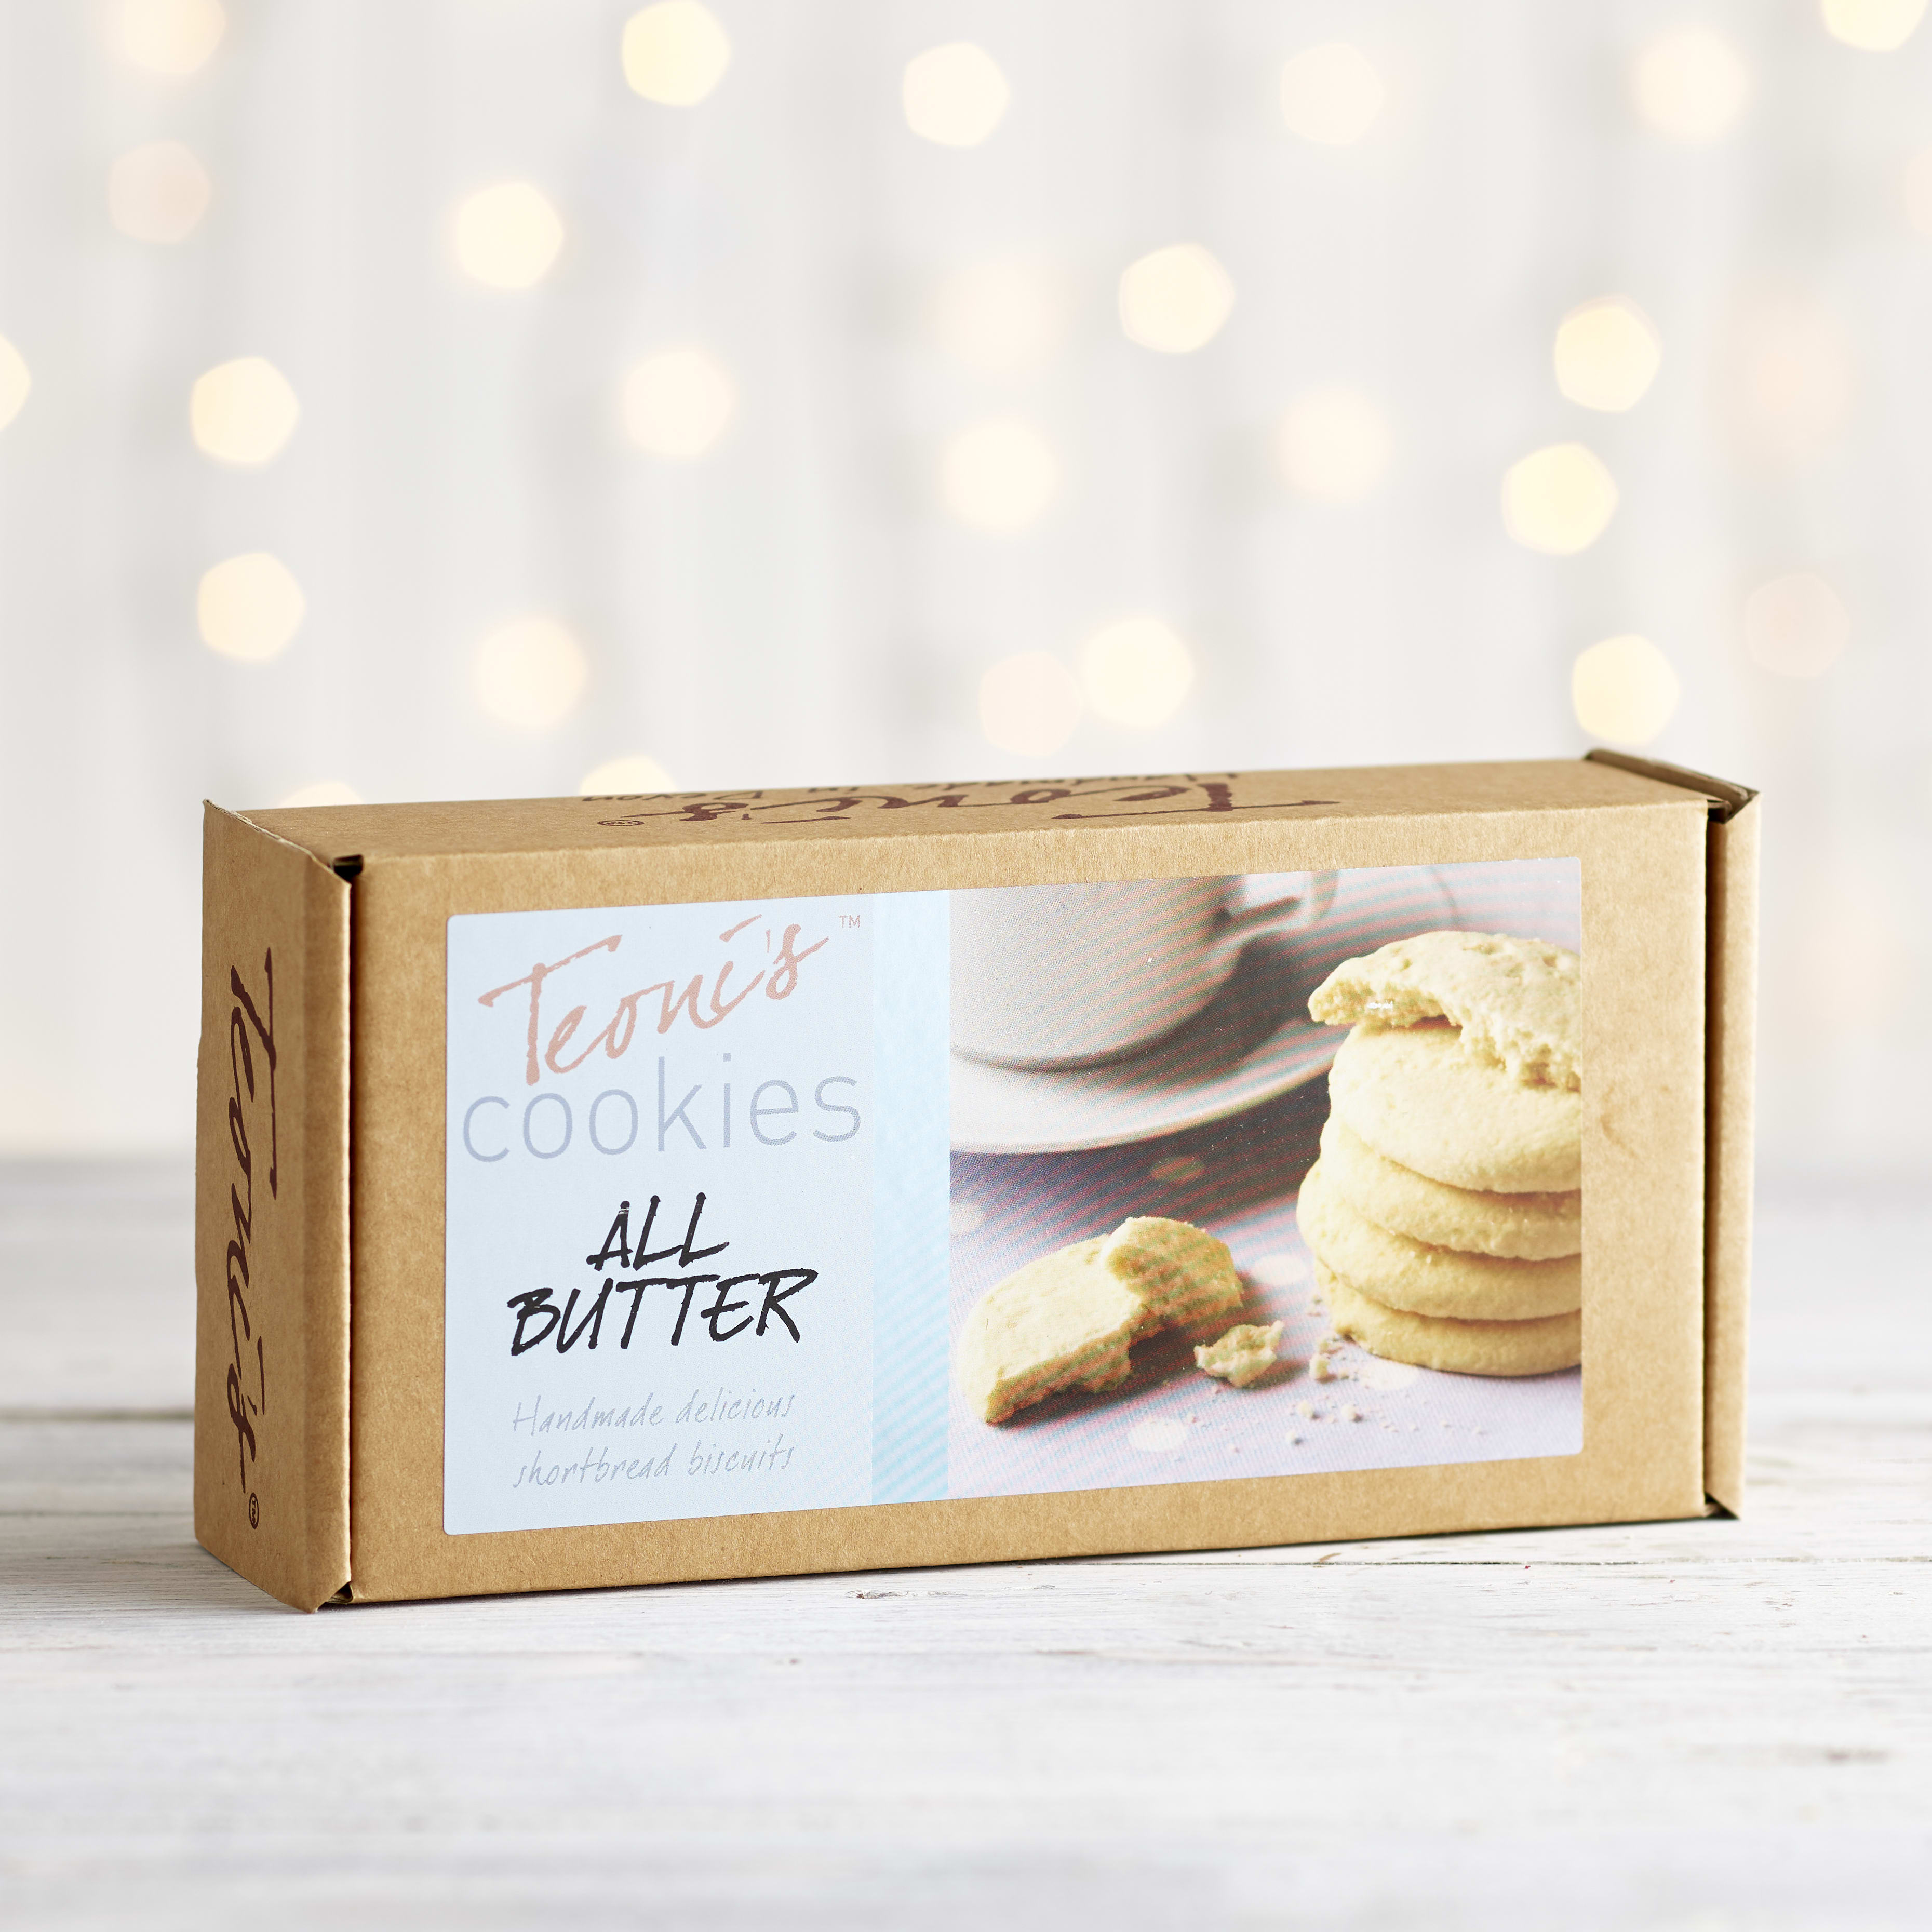 Teoni's Cookies All Butter Shortbread, 150g